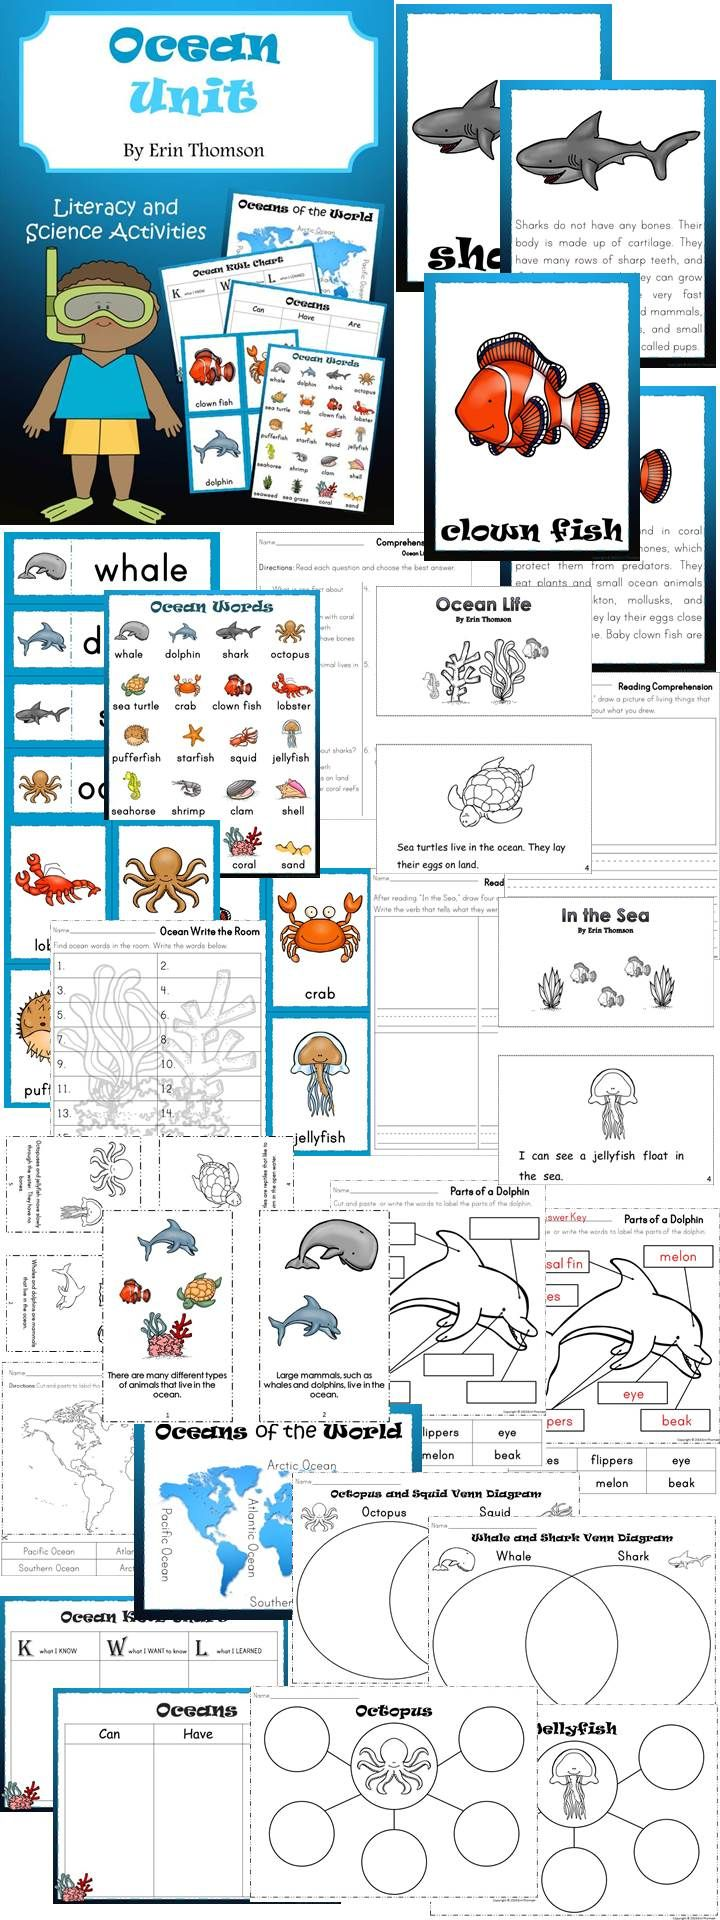 First grade life science worksheets what do animals eat 1 - Ocean Literacy And Science Unit For Kindergarten And First Grade Includes Ocean Animal Facts